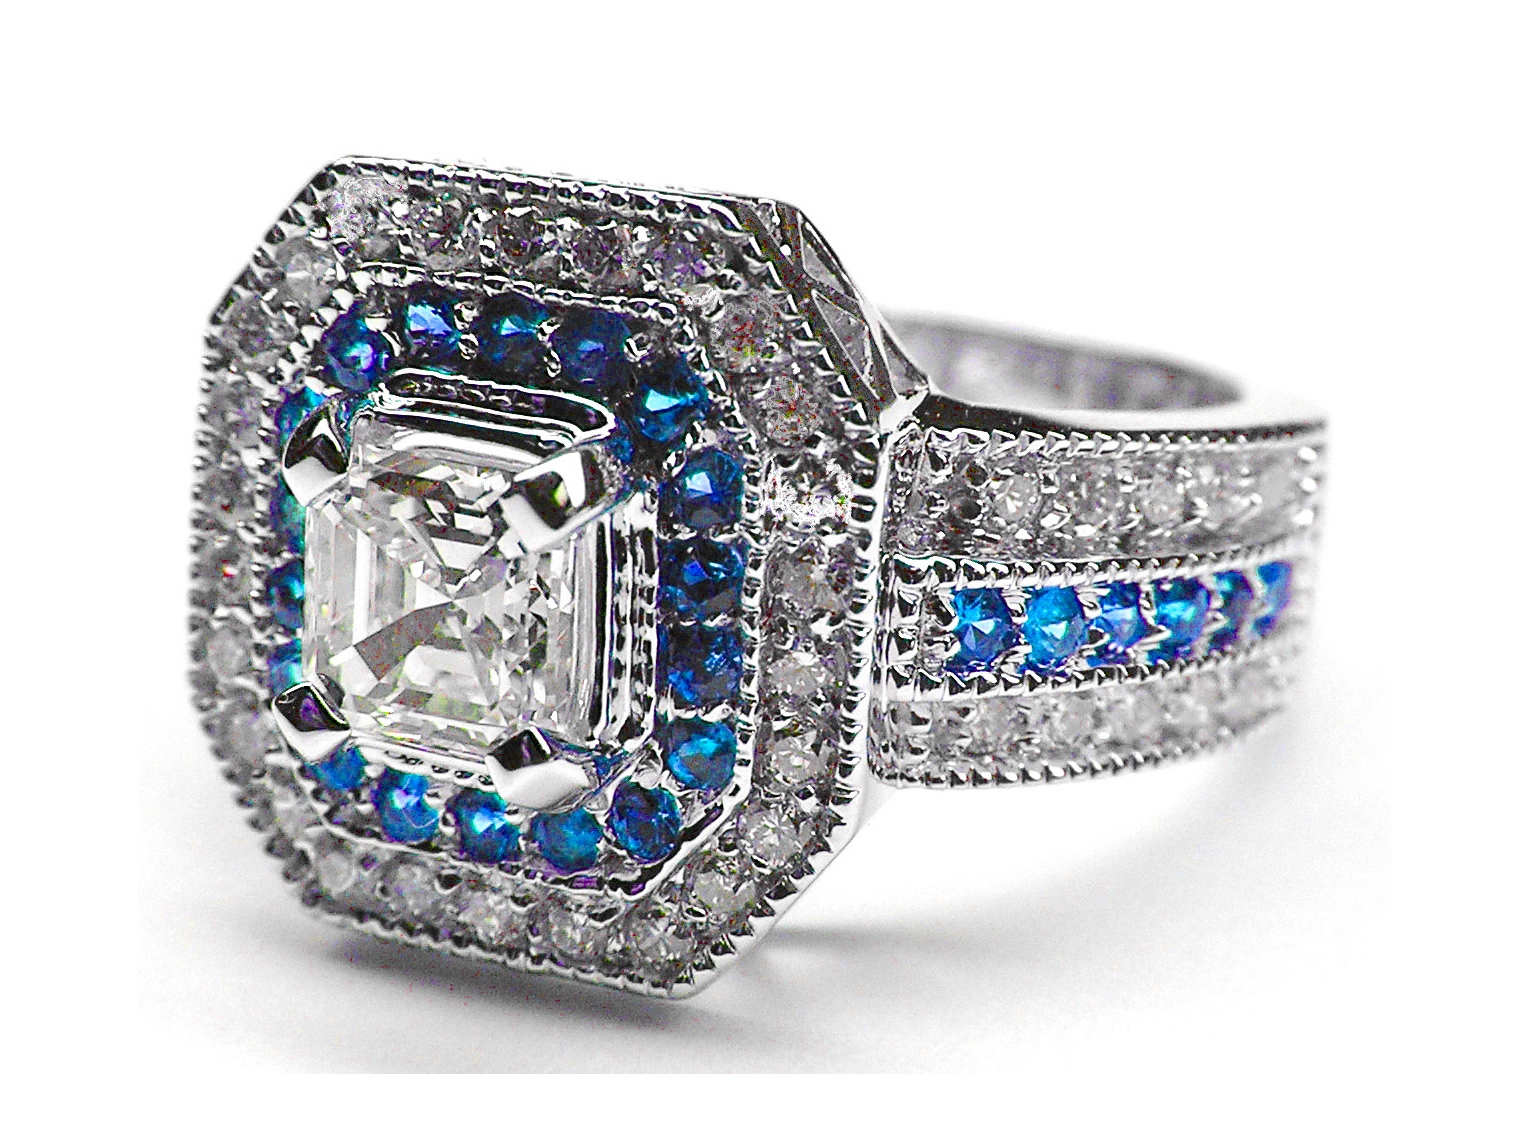 Bleue Saphir Streaming Engagement Ring Square Halo Diamonds And Blue Sapphires